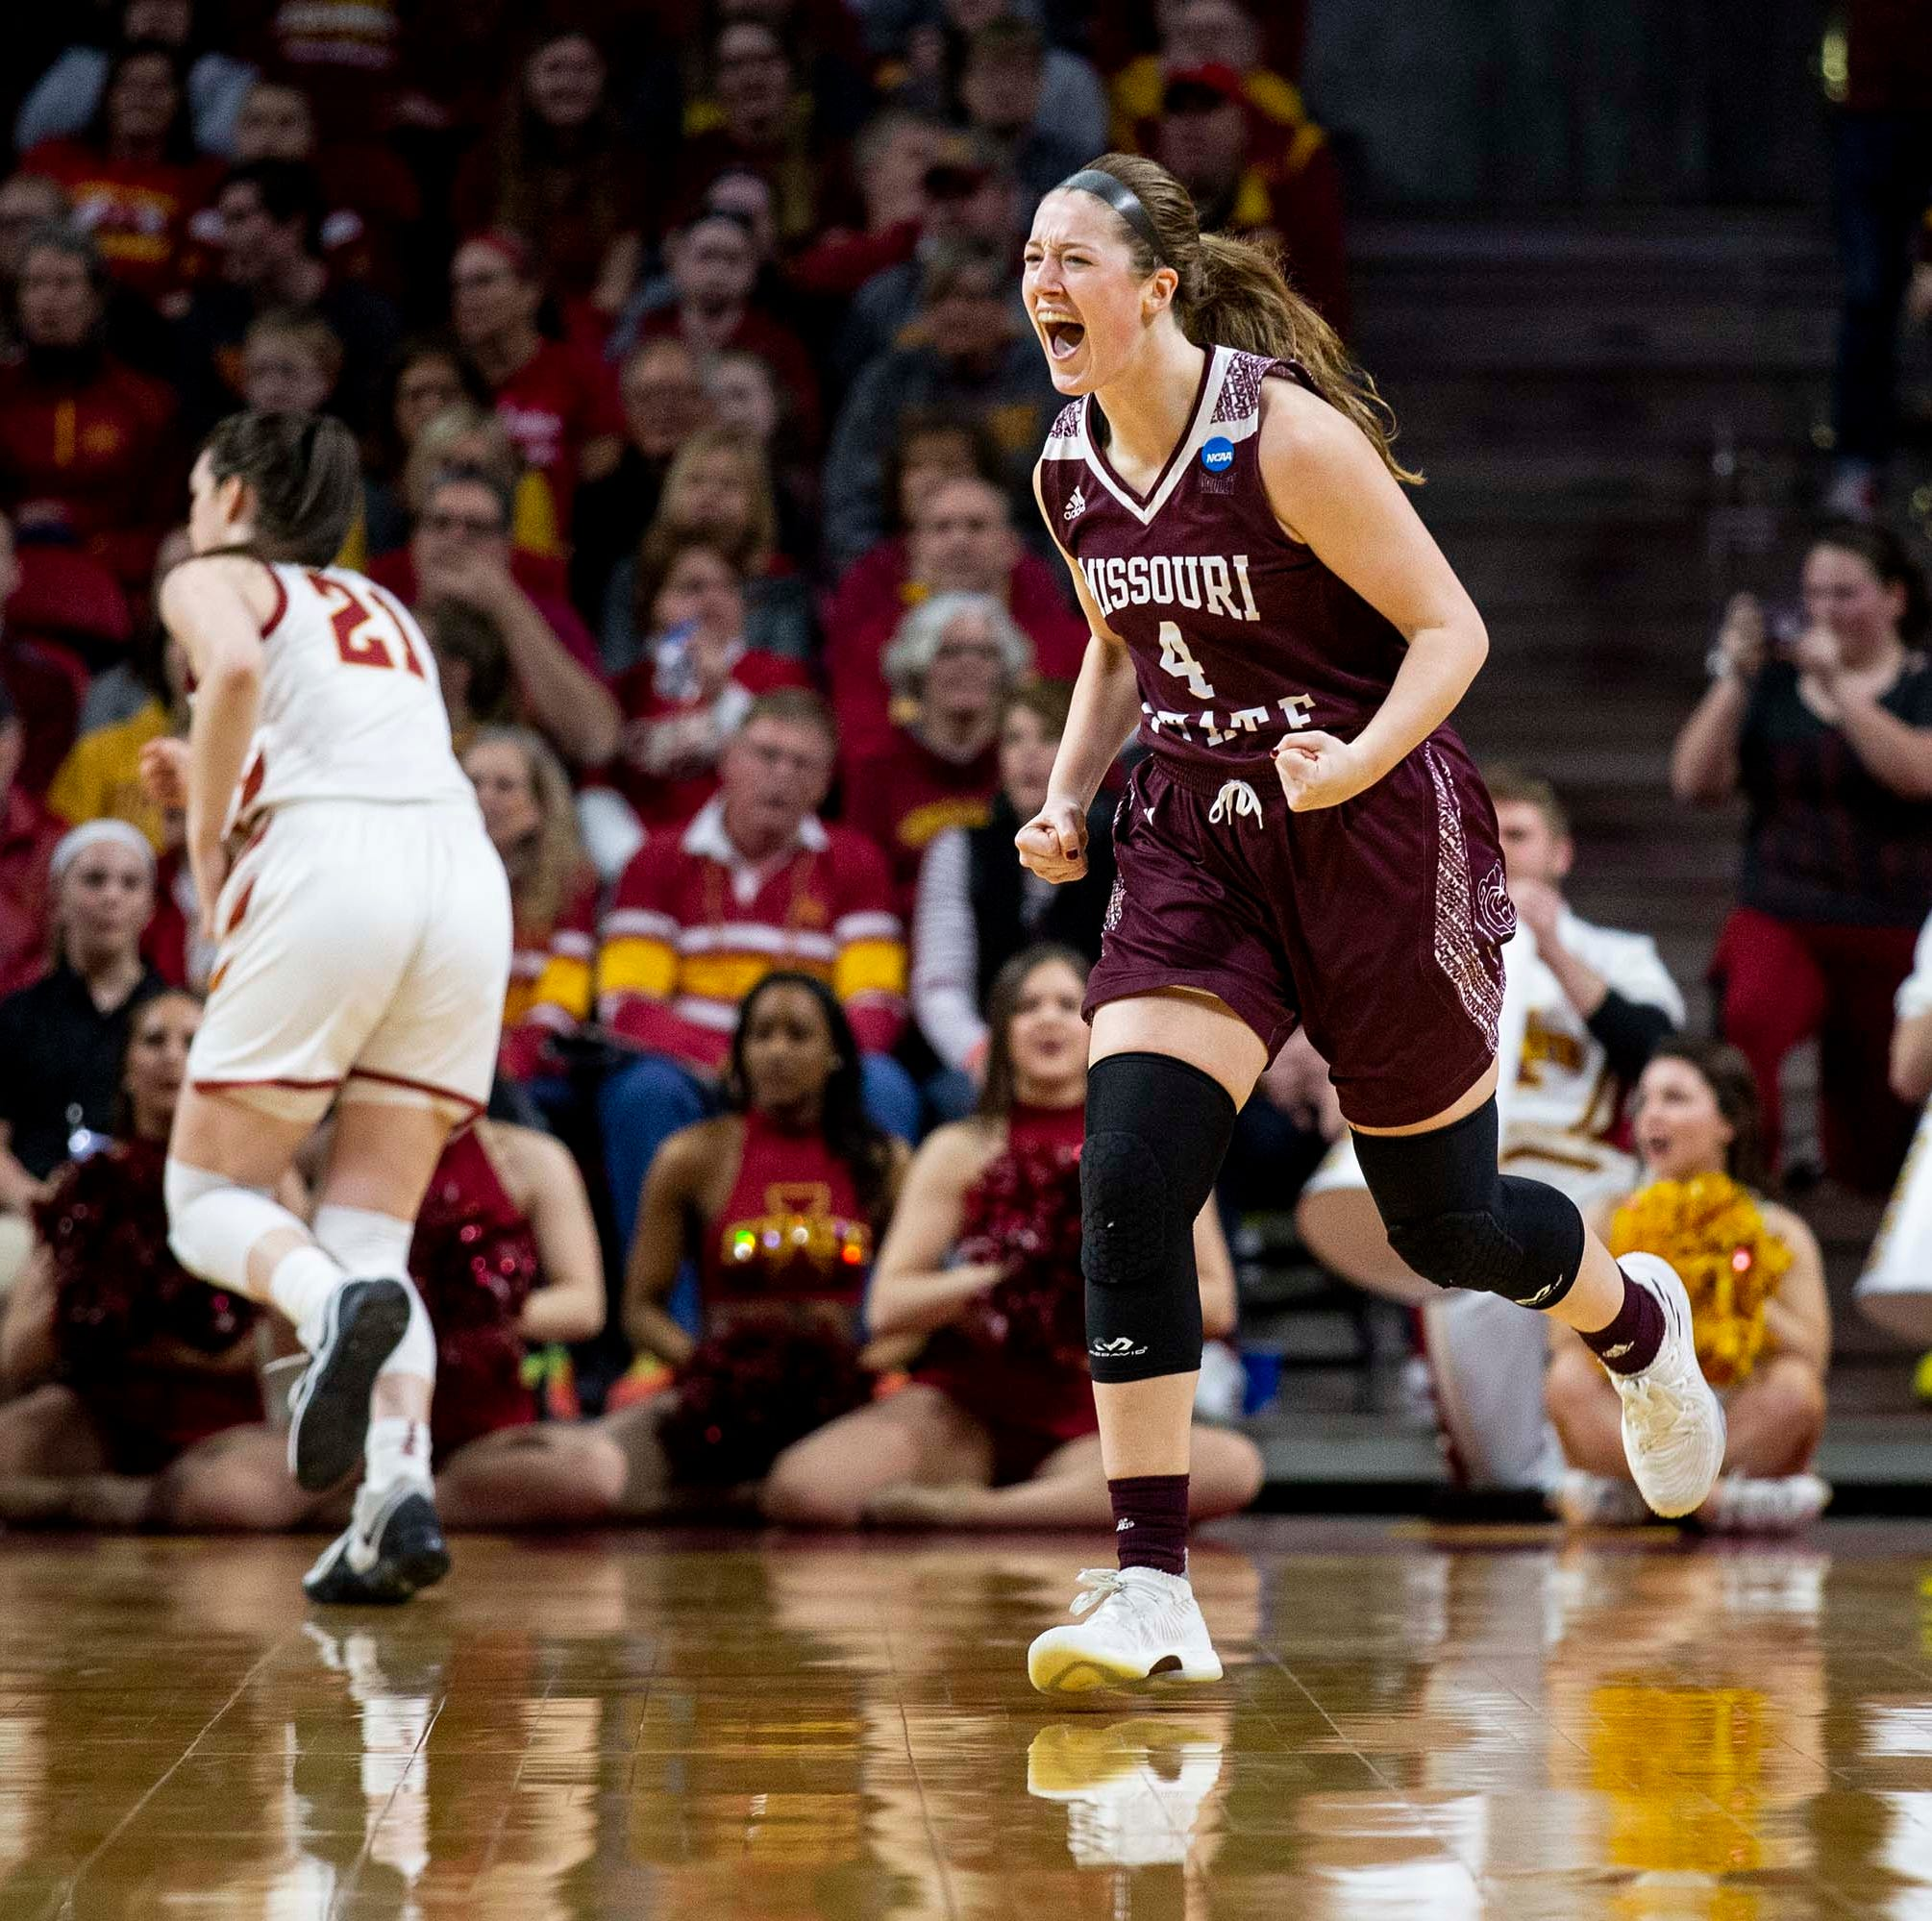 MSU Lady Bears advance to Sweet 16 with win over Iowa State